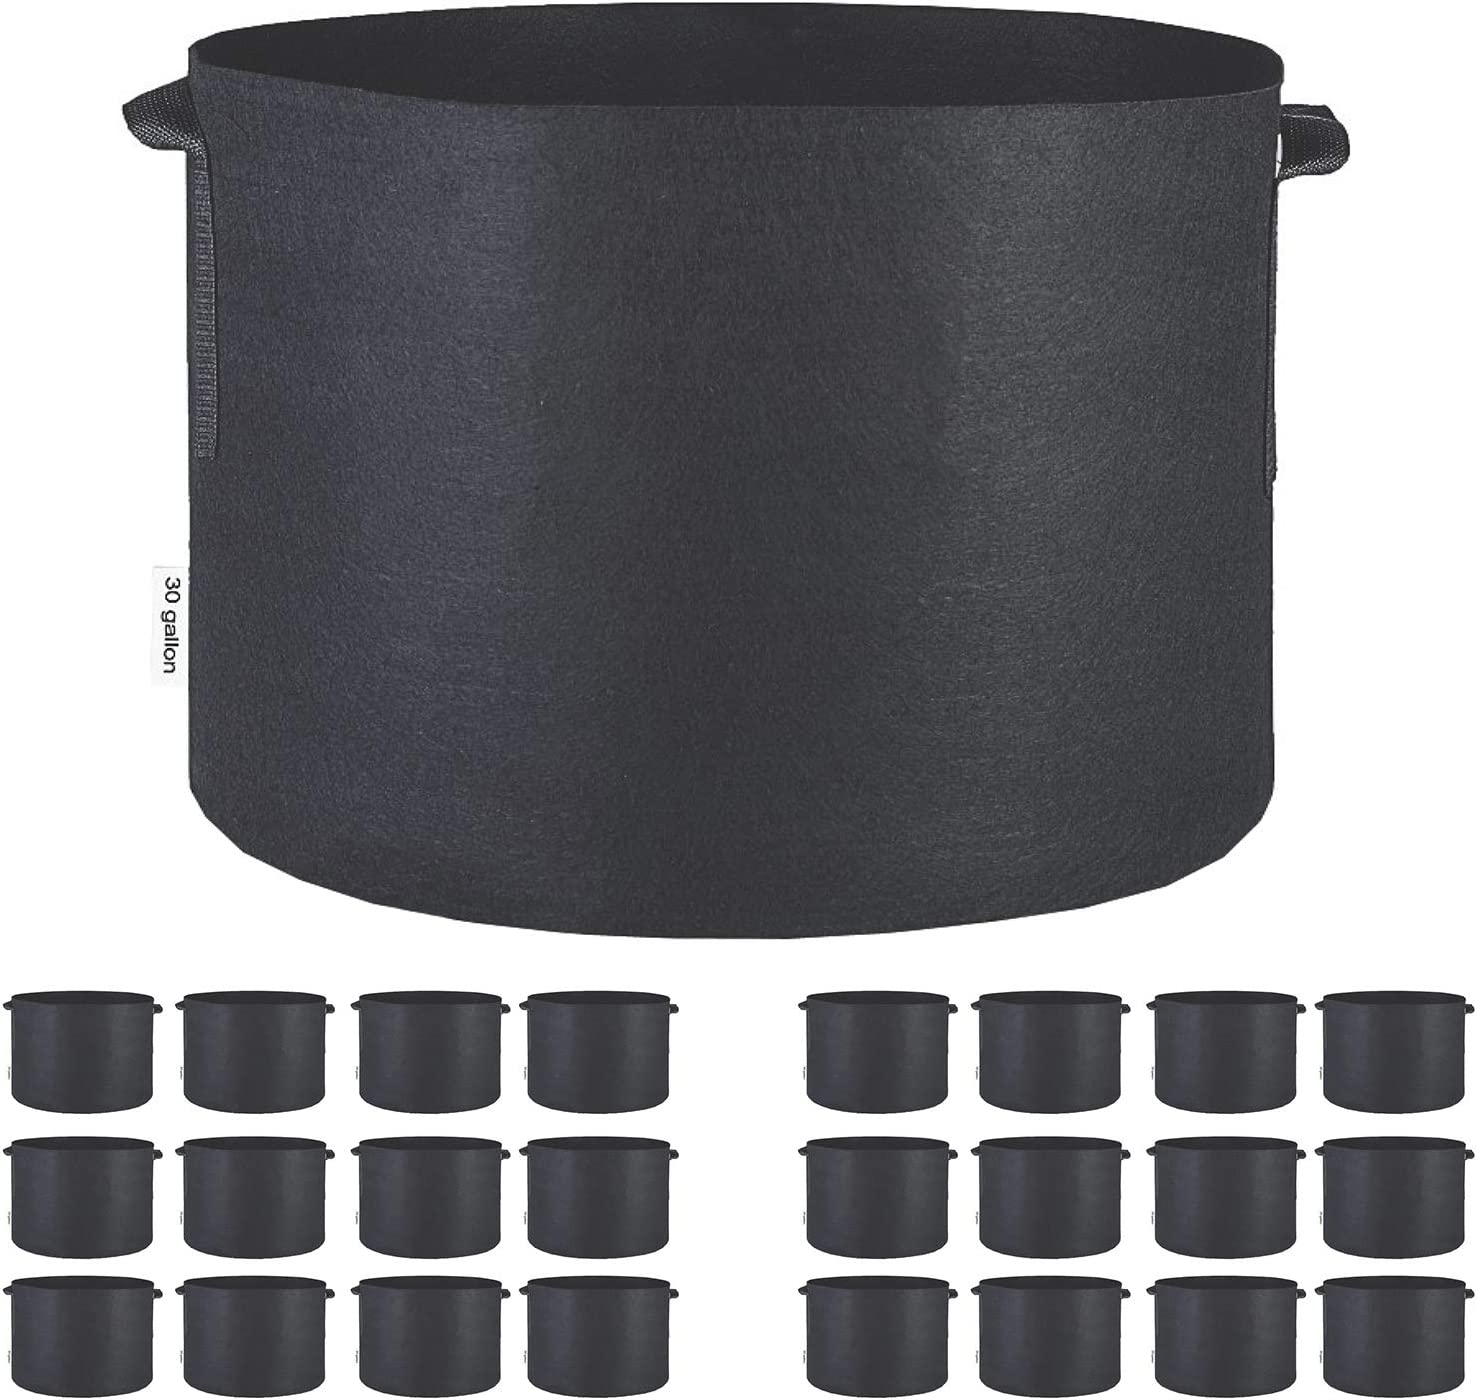 TopoGrow 24-Pack 30 Gallon Grow Bags Black Fabric Round Aeration Pots Container for Nursery Garden and Planting Grow (30 Gallon, Black(24-Pack))